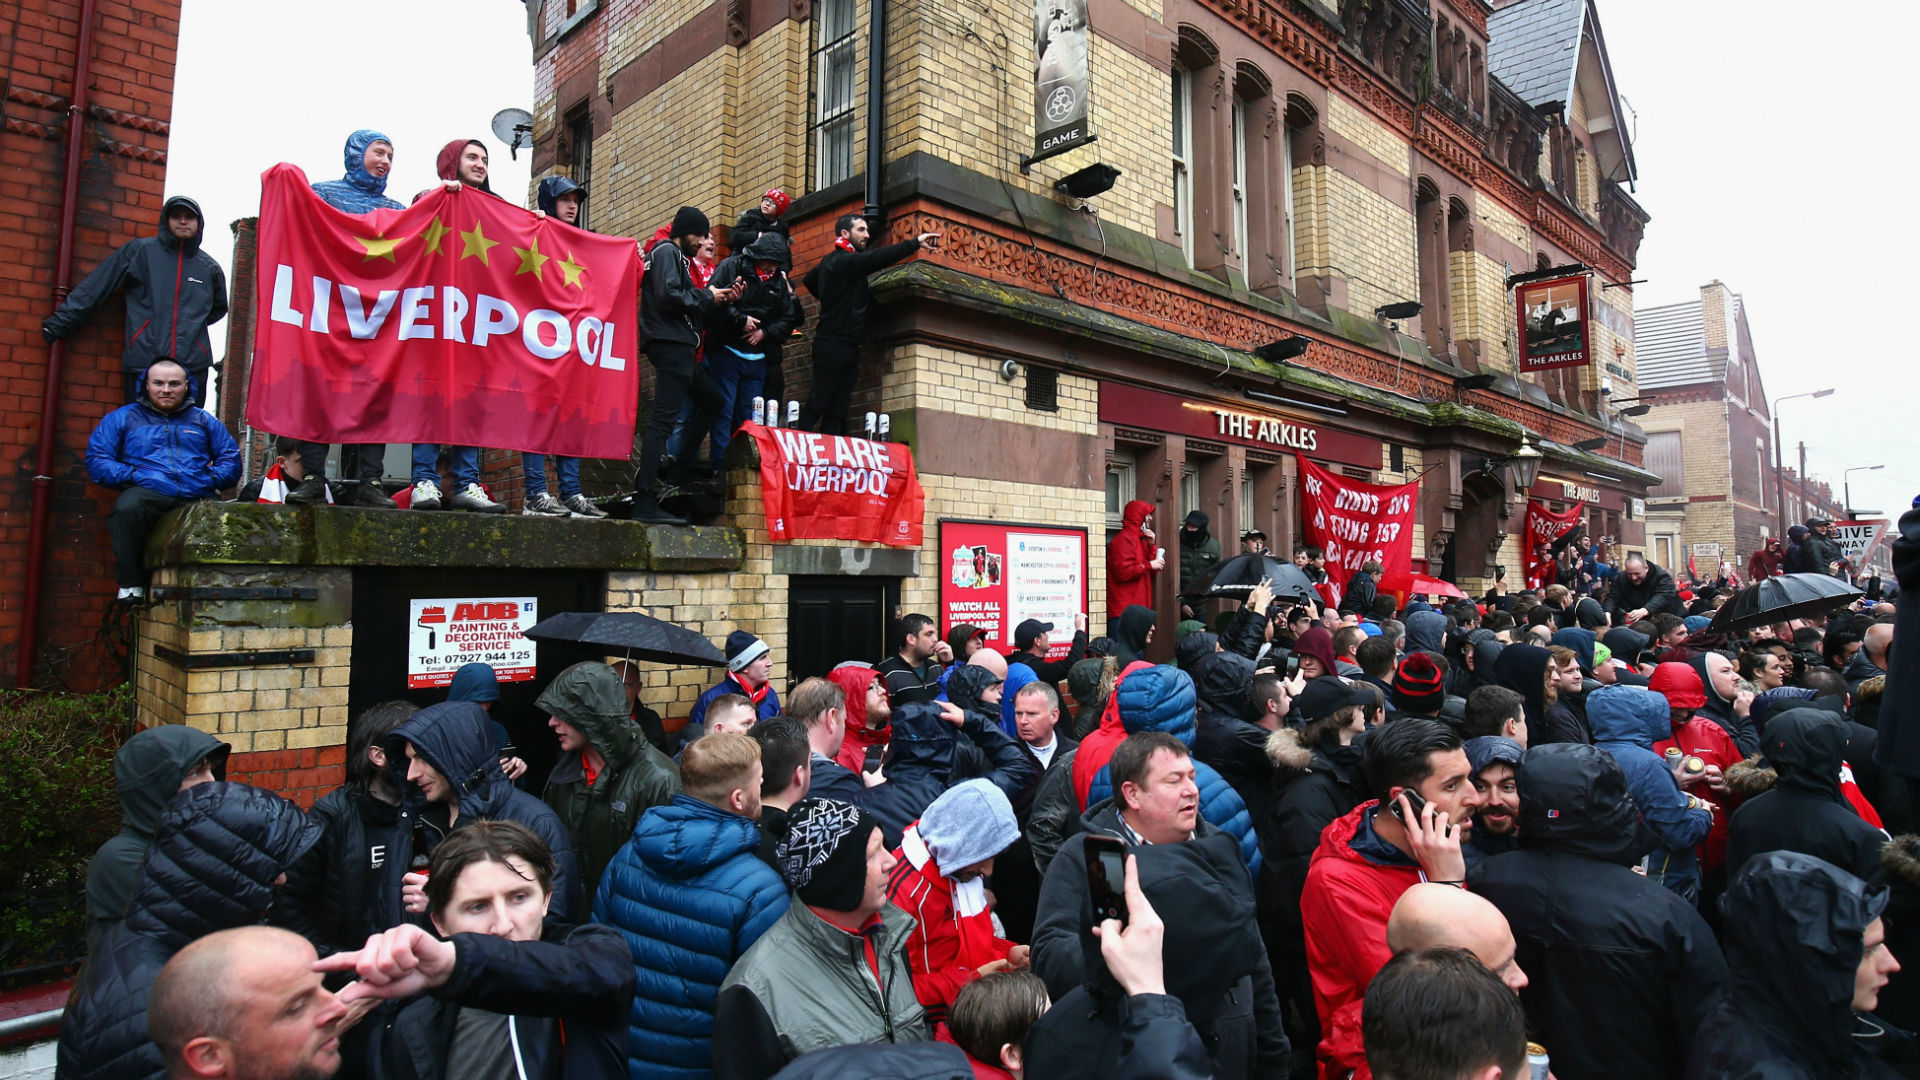 Liverpool fans at Anfield ahead of the first leg with Roma